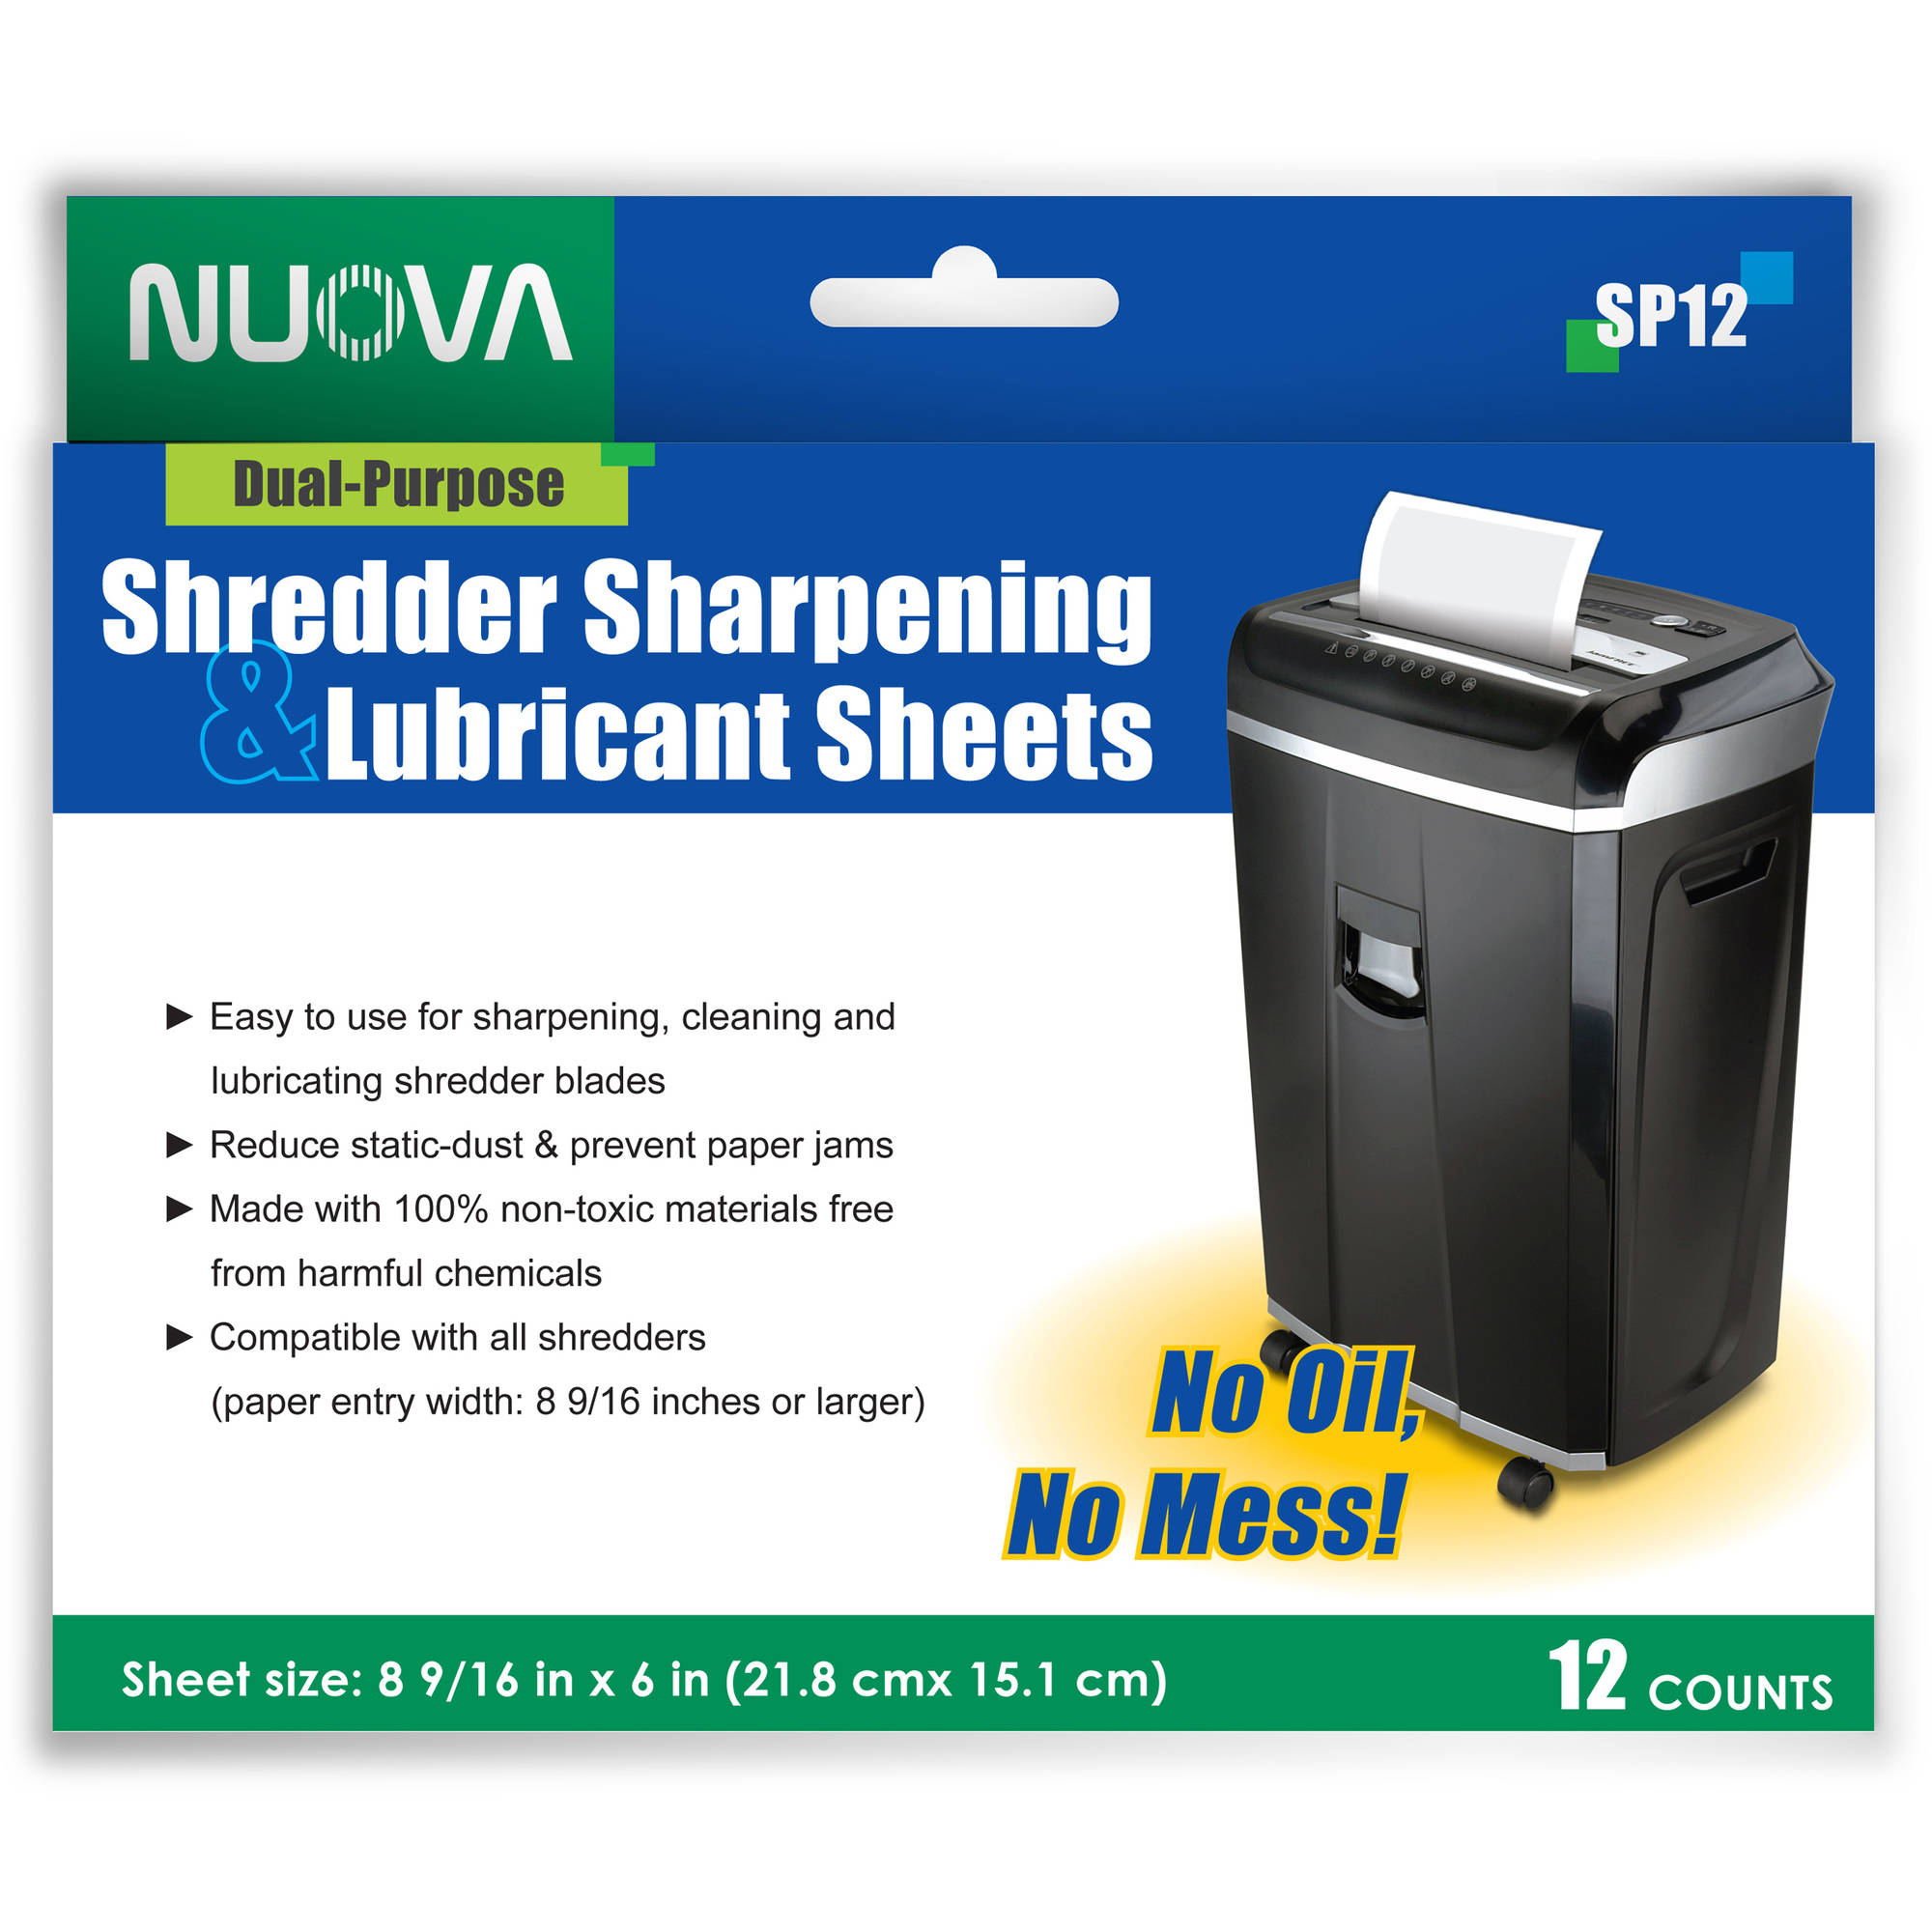 Nuova SP12 Shredder Sharpening and Lubricant Sheets, 12-Count